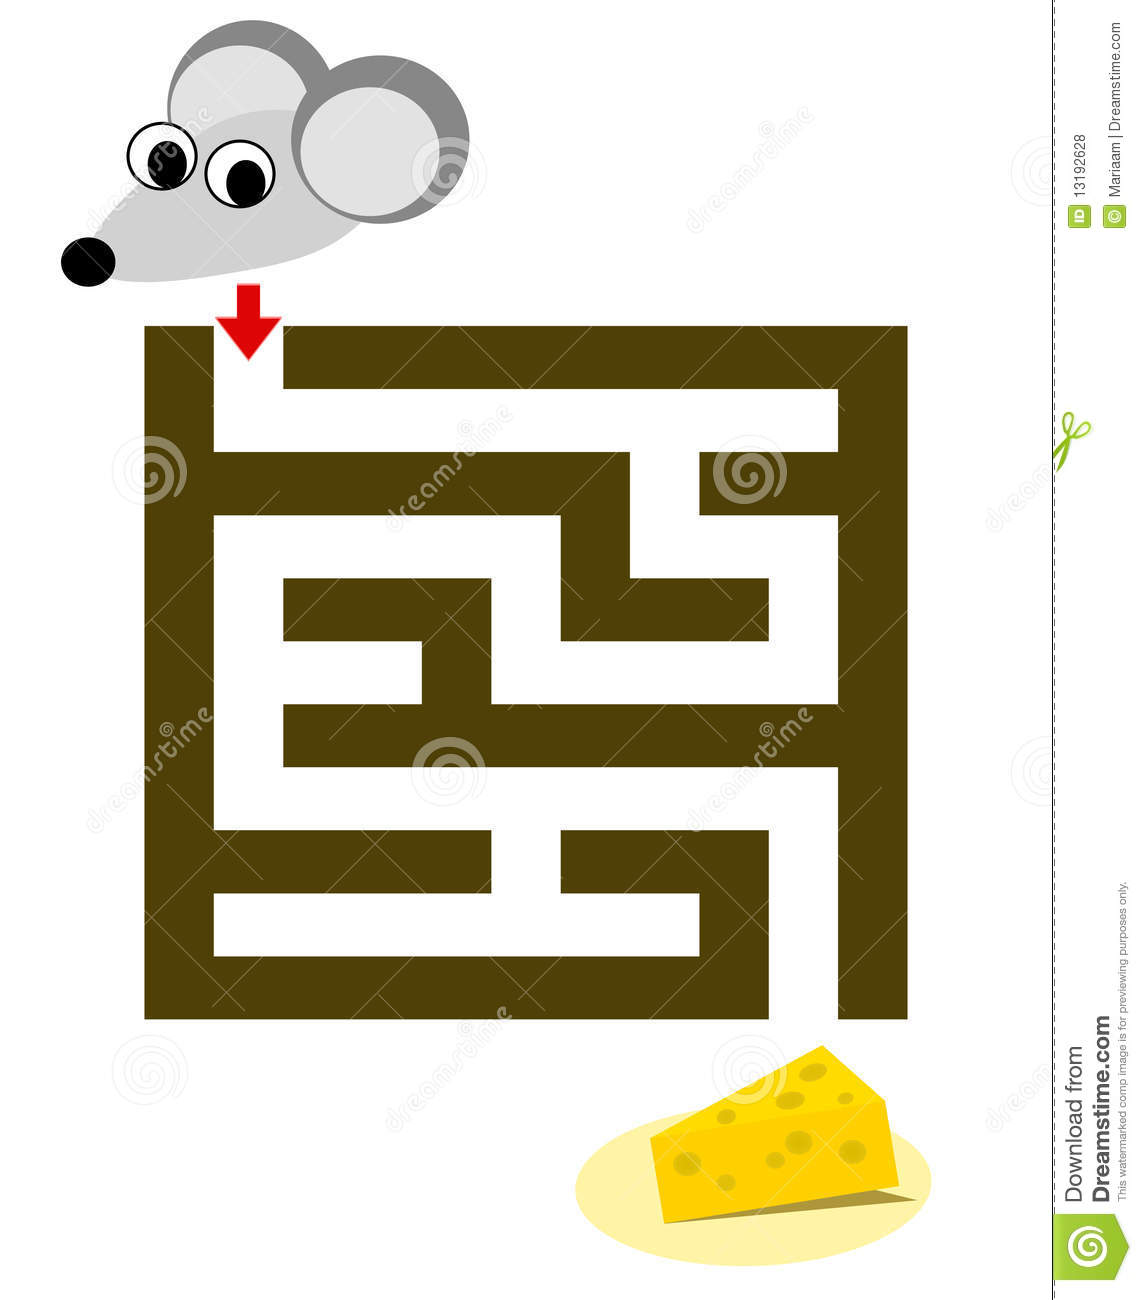 Maze For Children With Mouse Amp Cheese Royalty Free Stock